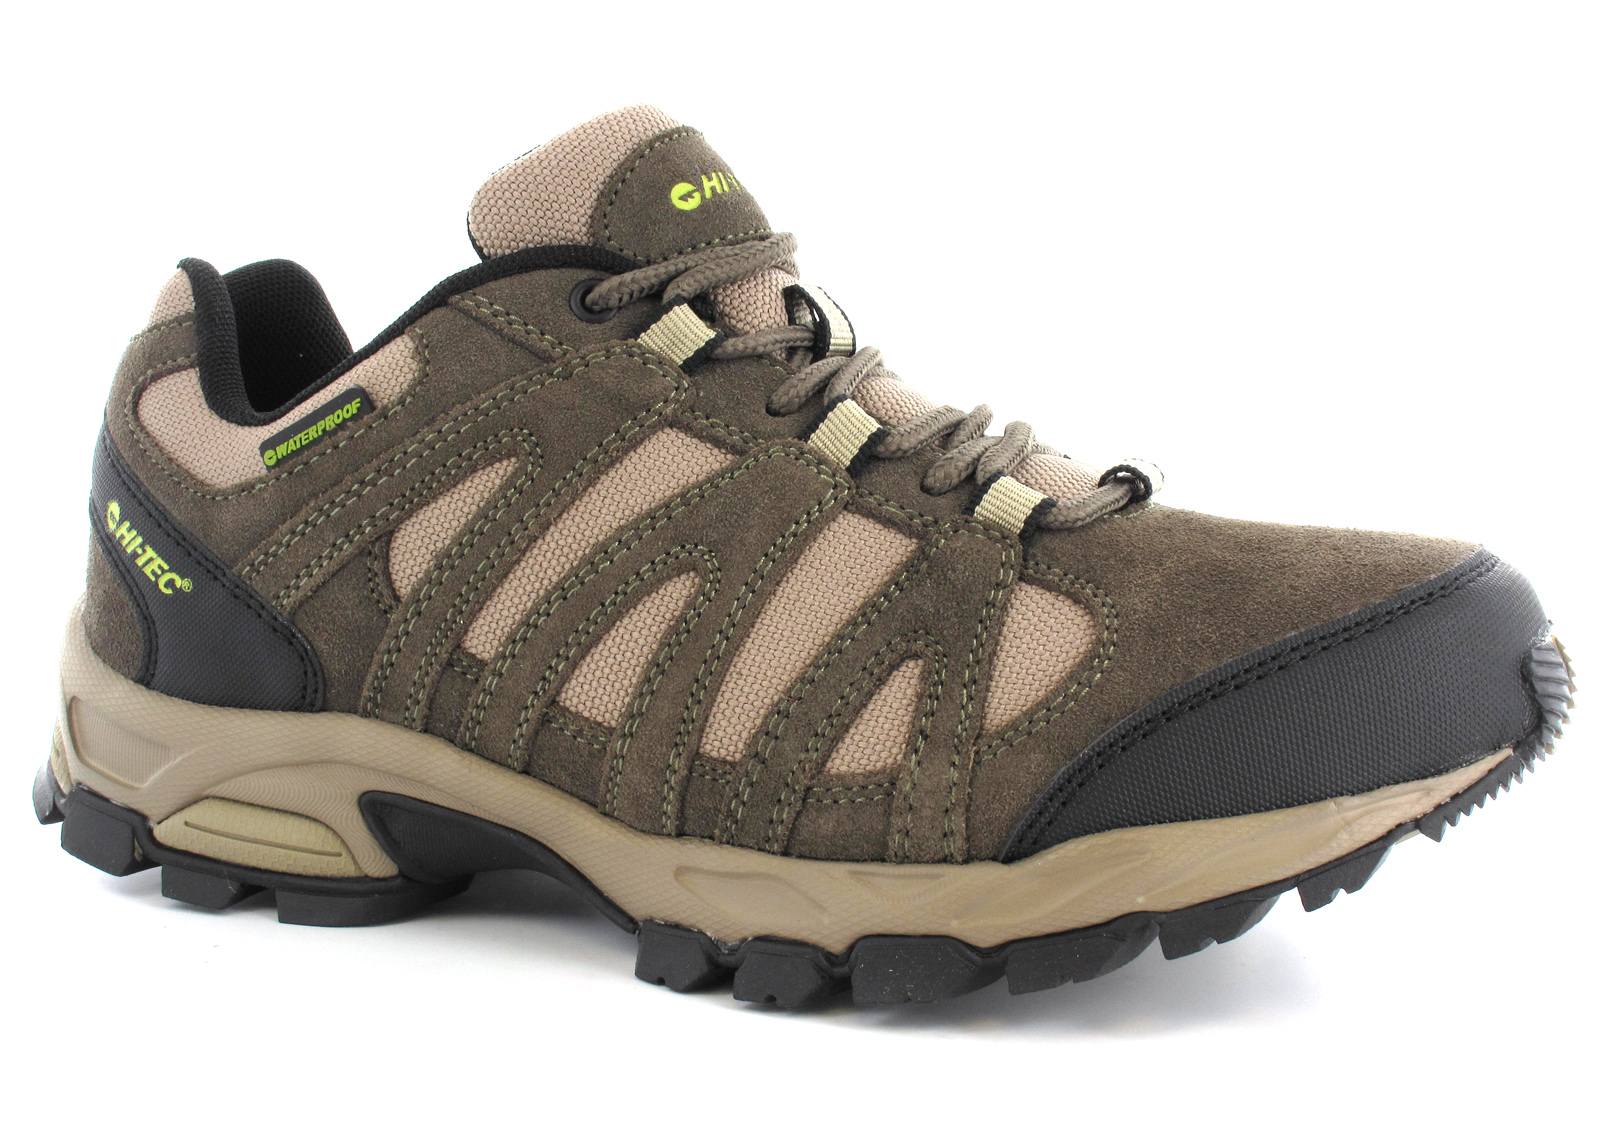 Mens Hi Tec Lightweight Hiking Shoes